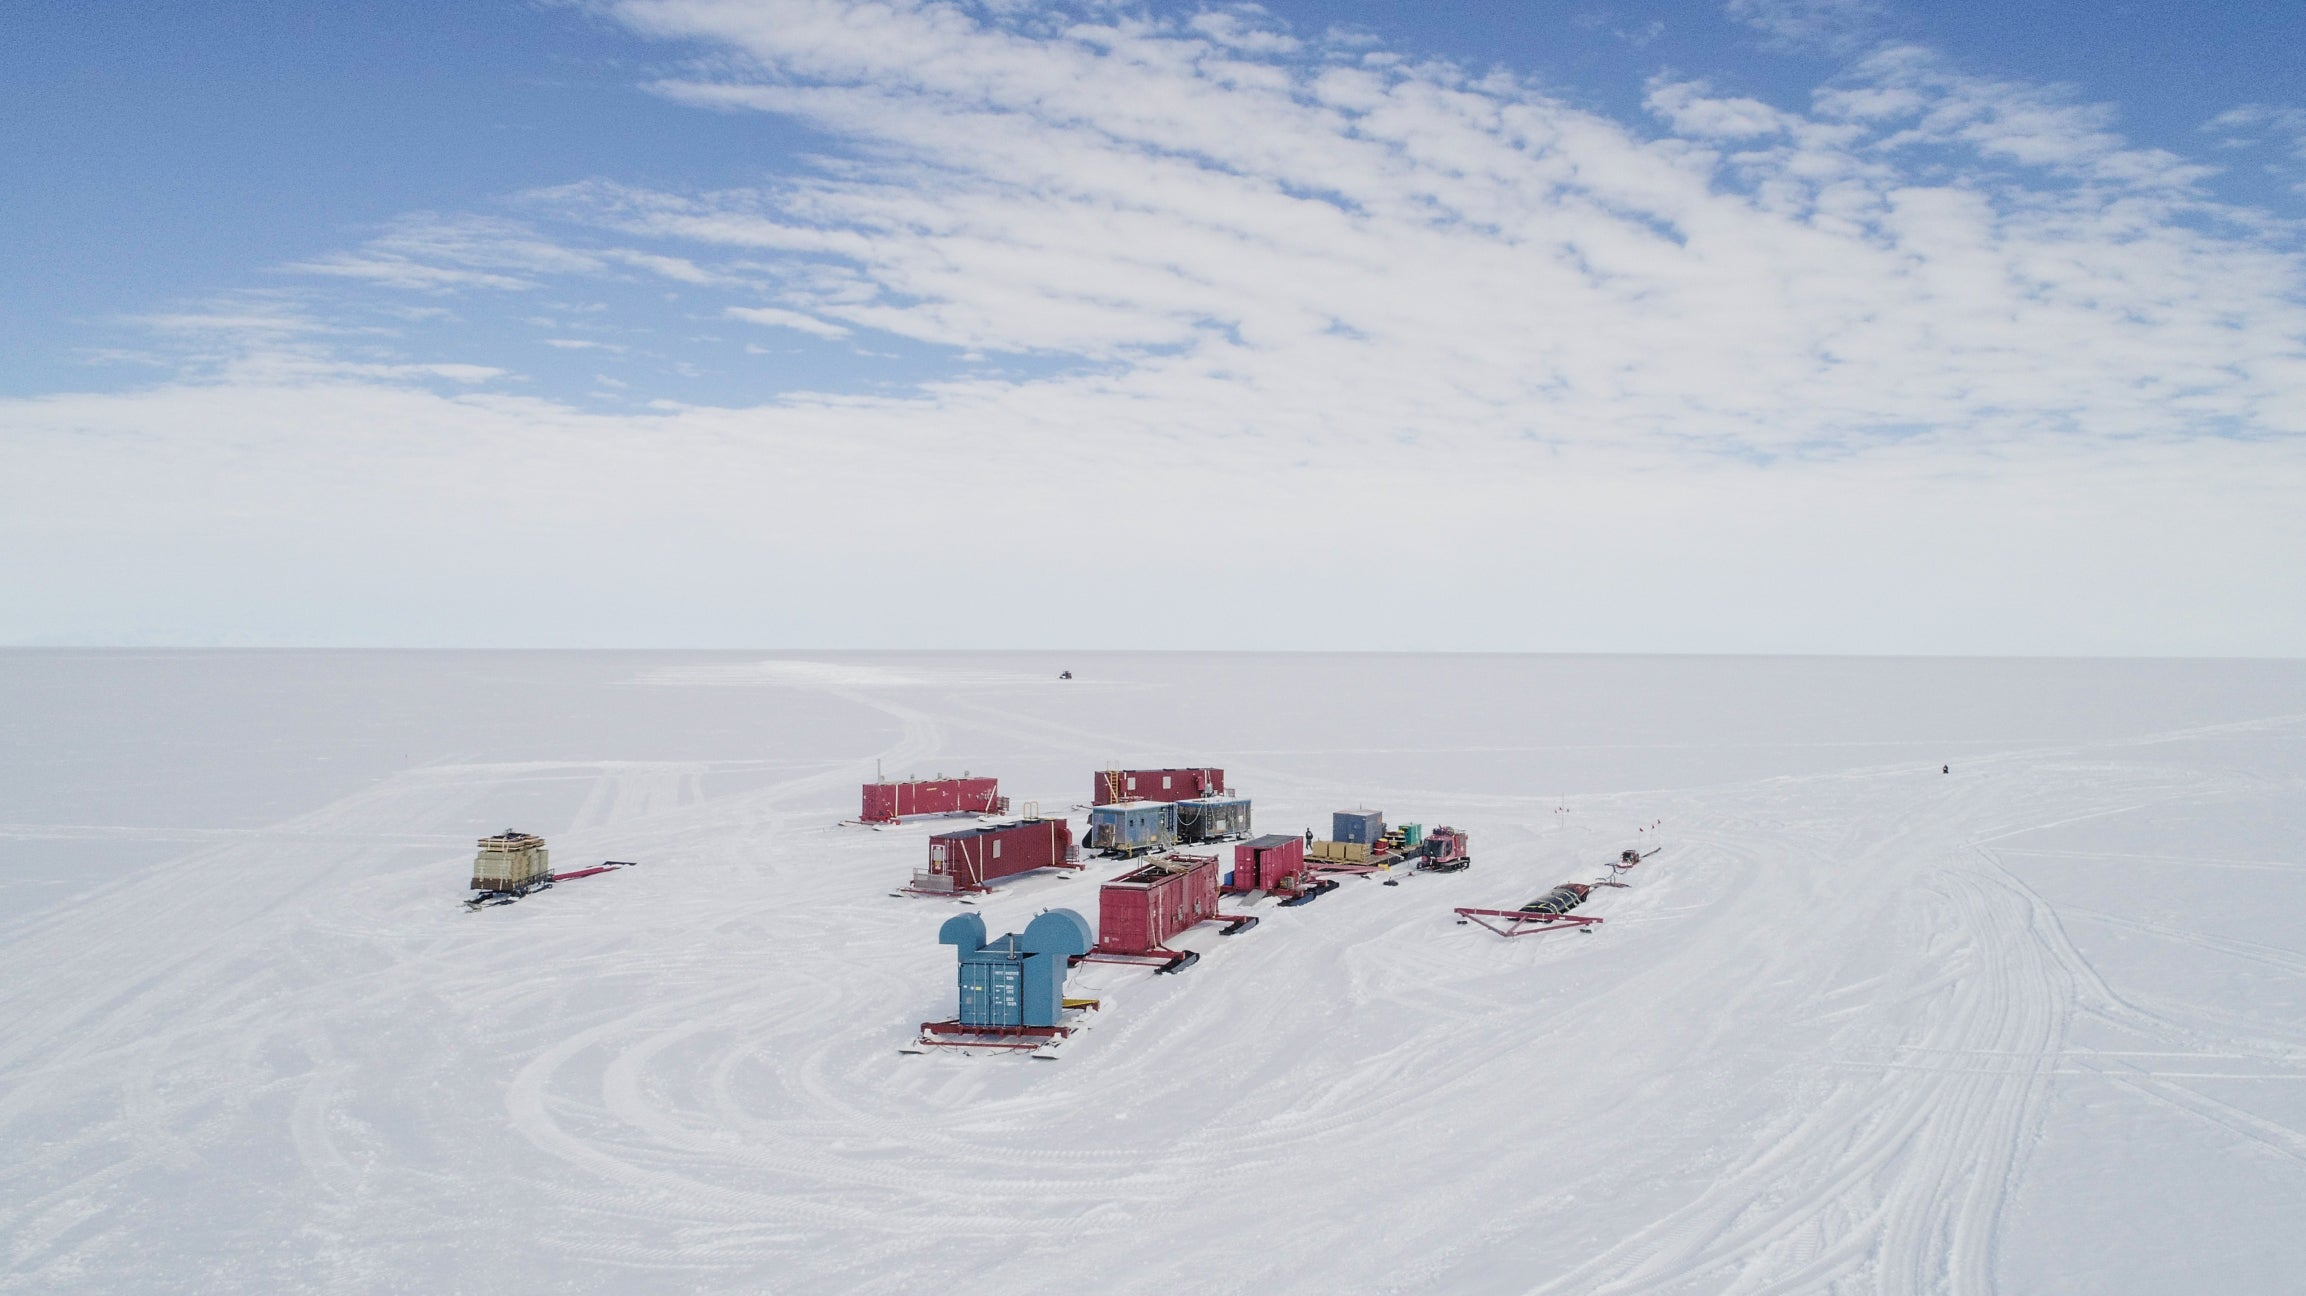 Antarctic Scientists Are About To Drill Into One Of The Most Isolated Lakes On Earth